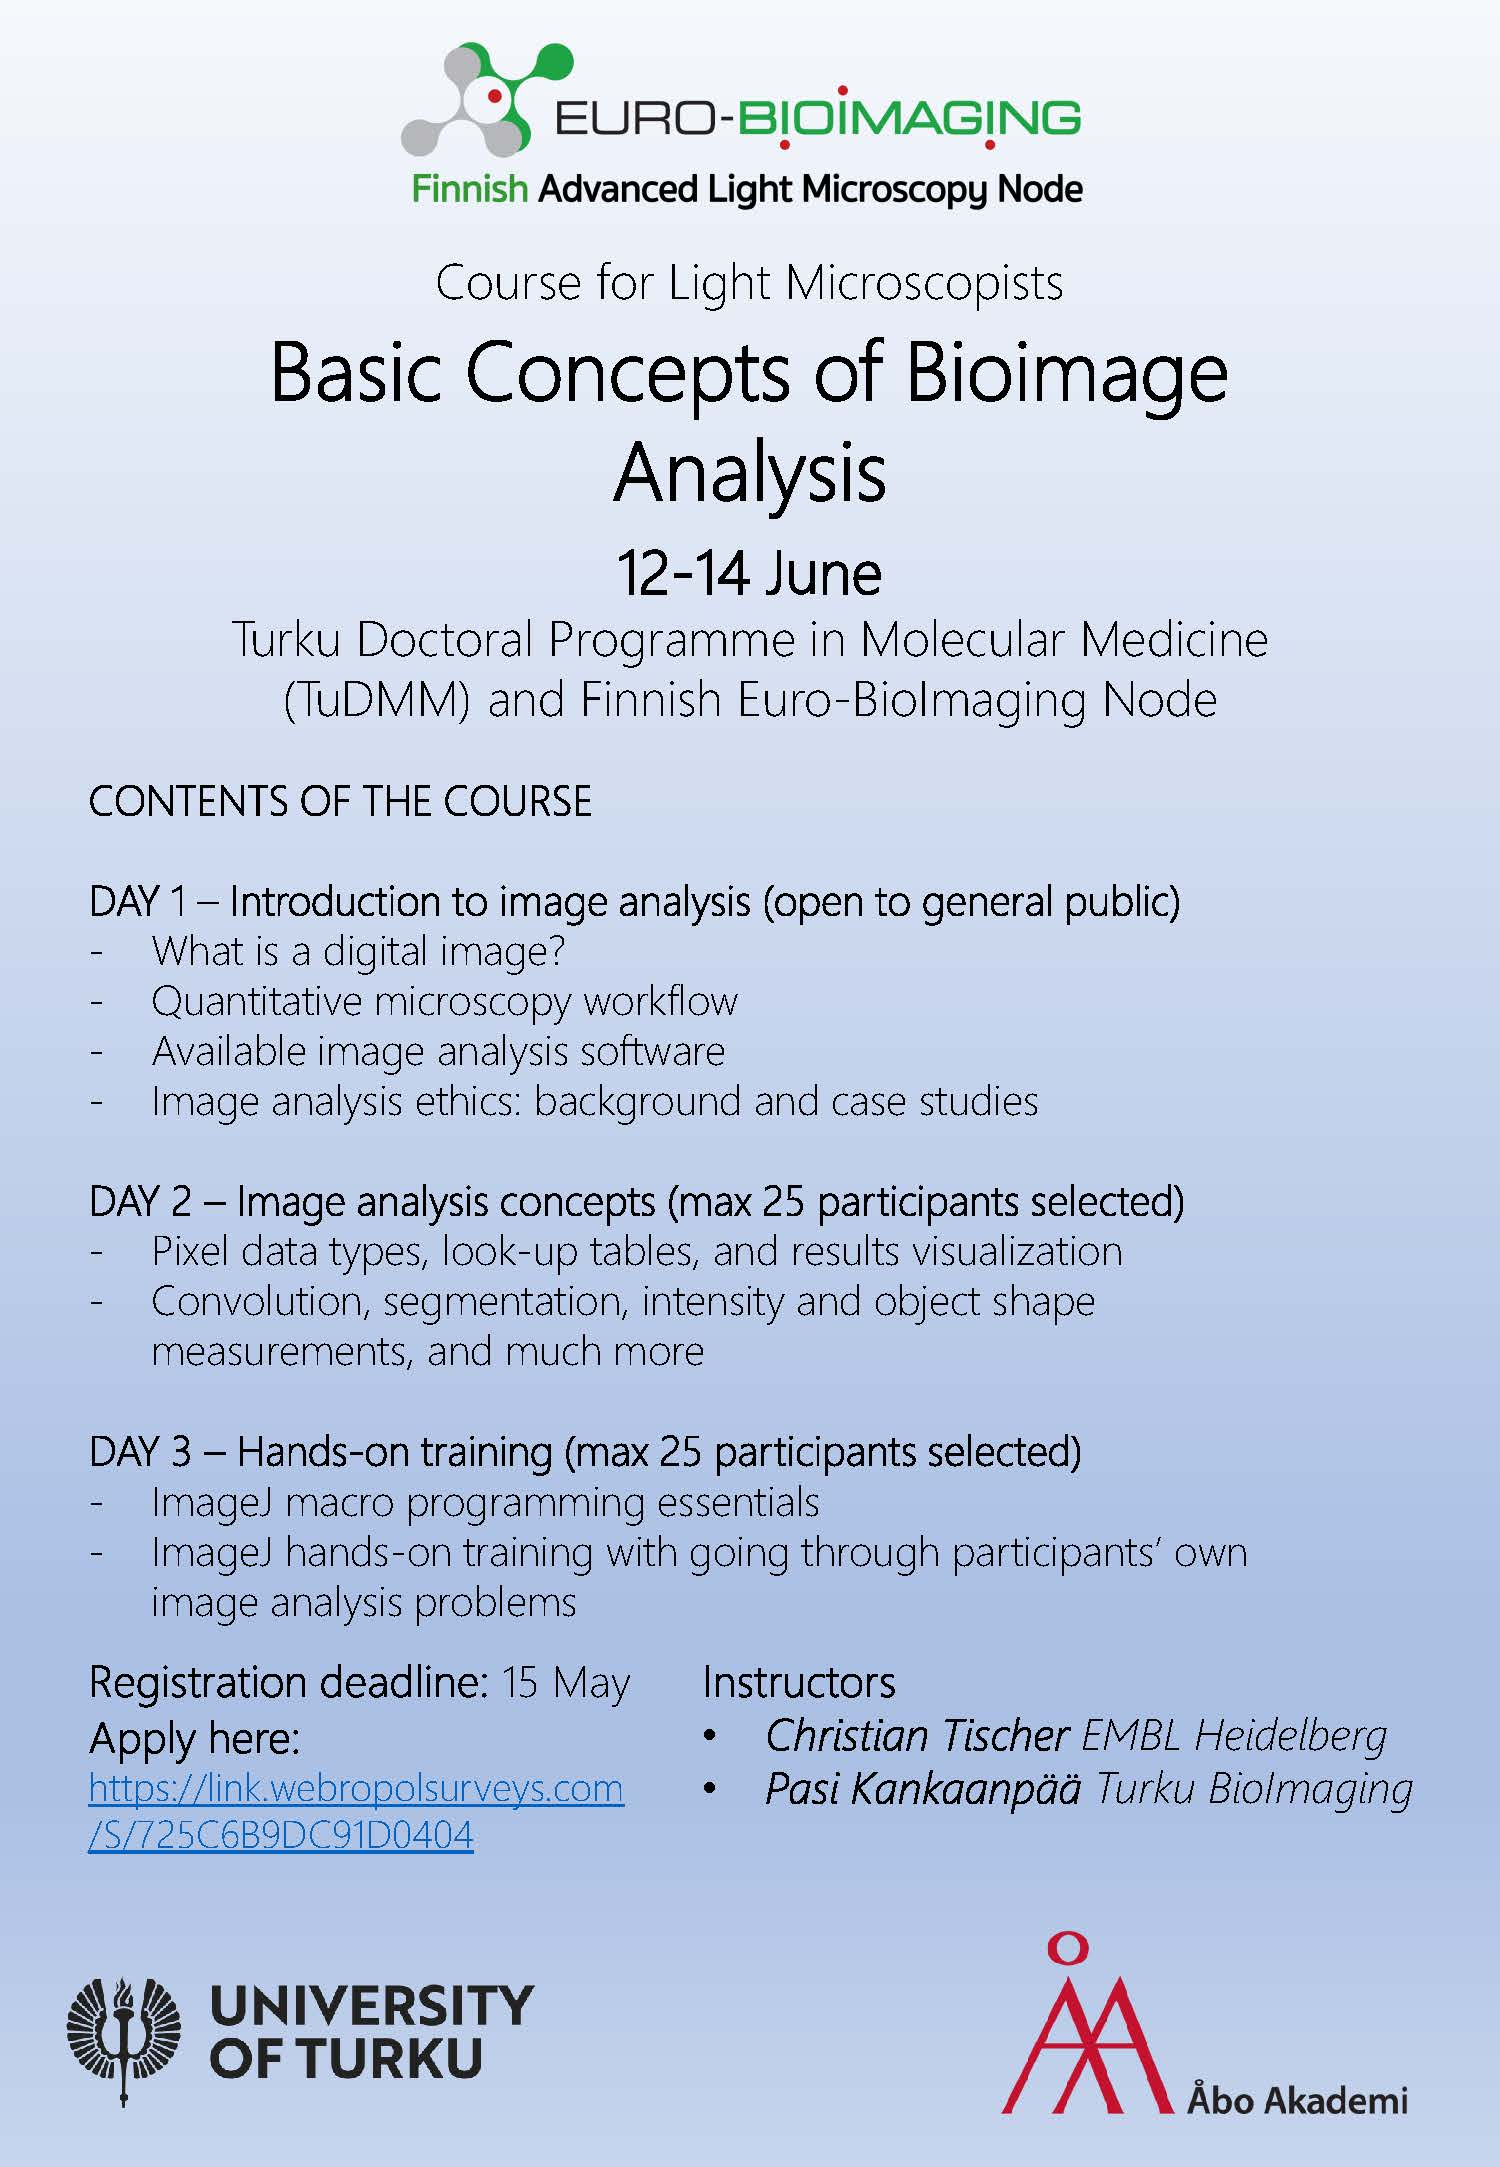 Basic concepts in BioImage analysis